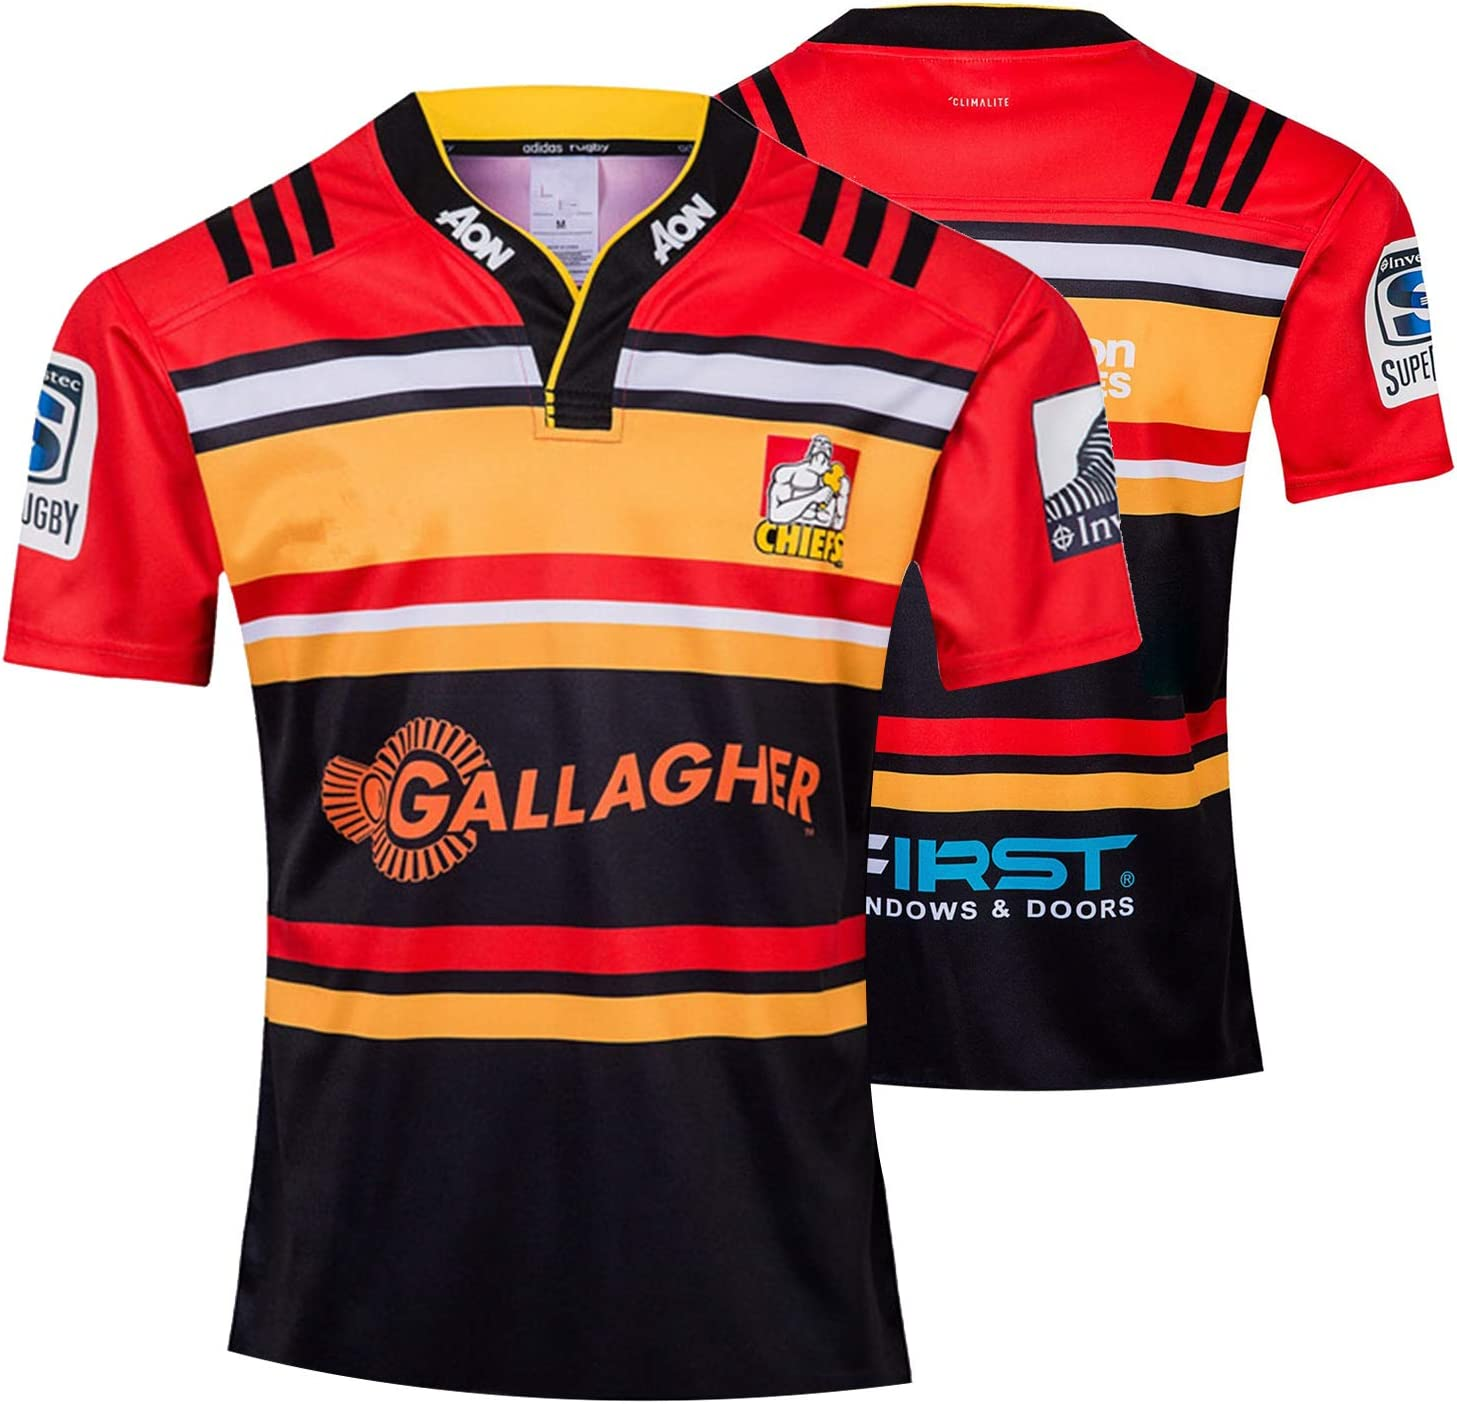 JIEBANG 2019 Exeter Chiefs Rugby Jersey,Chiefs Memorial Edition Short Sleeve Rugby T-shirt Polo Shirts,Mens Competition Training Football Jersey red-S